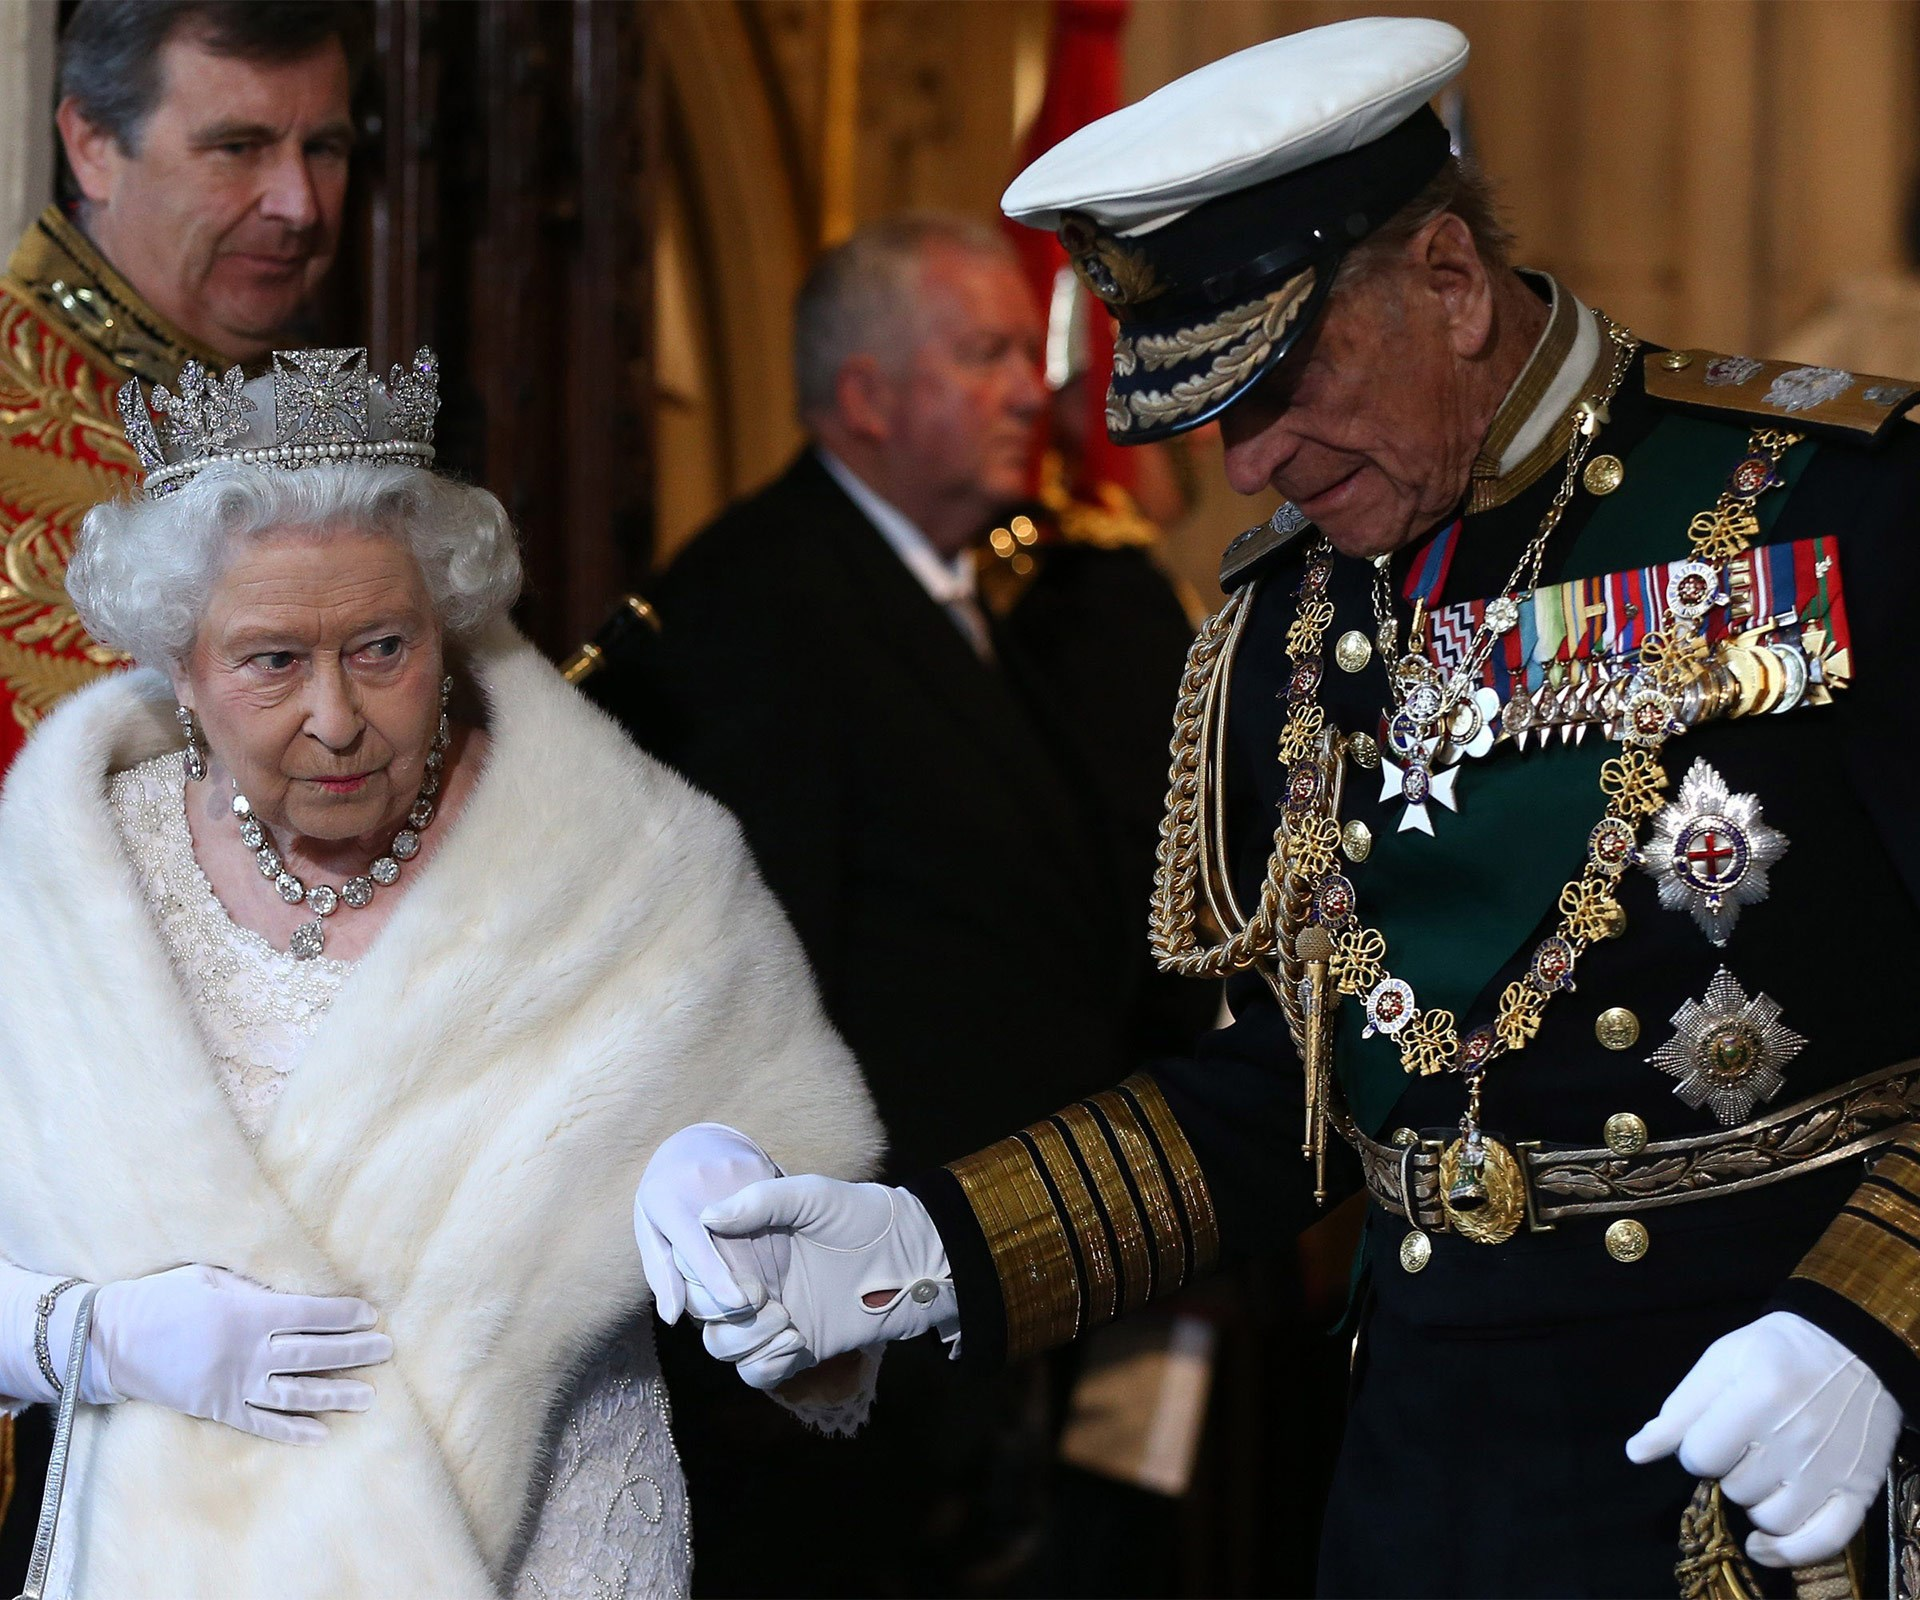 Prince Philip is the ever-doting husband, caring for his wife, the Queen, as he holds her hand through life.